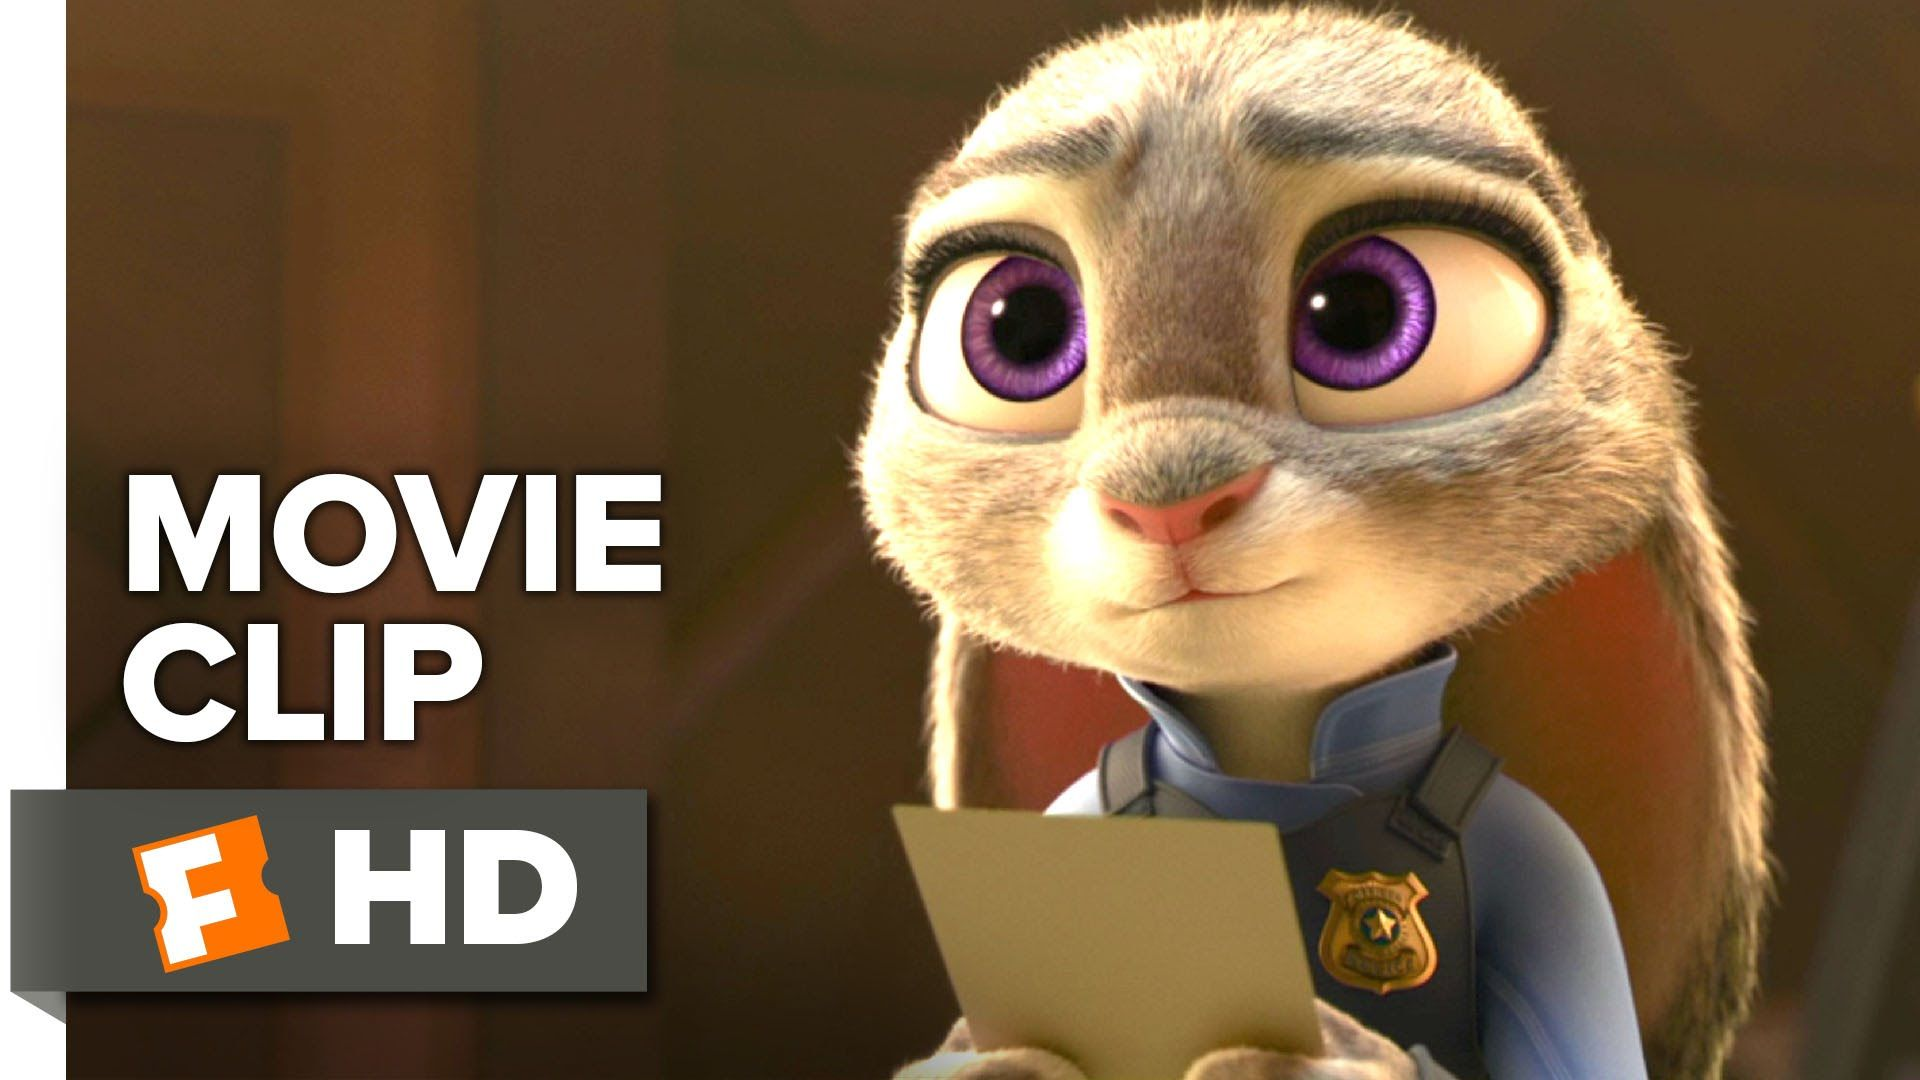 Try Not Laugh Zootopia